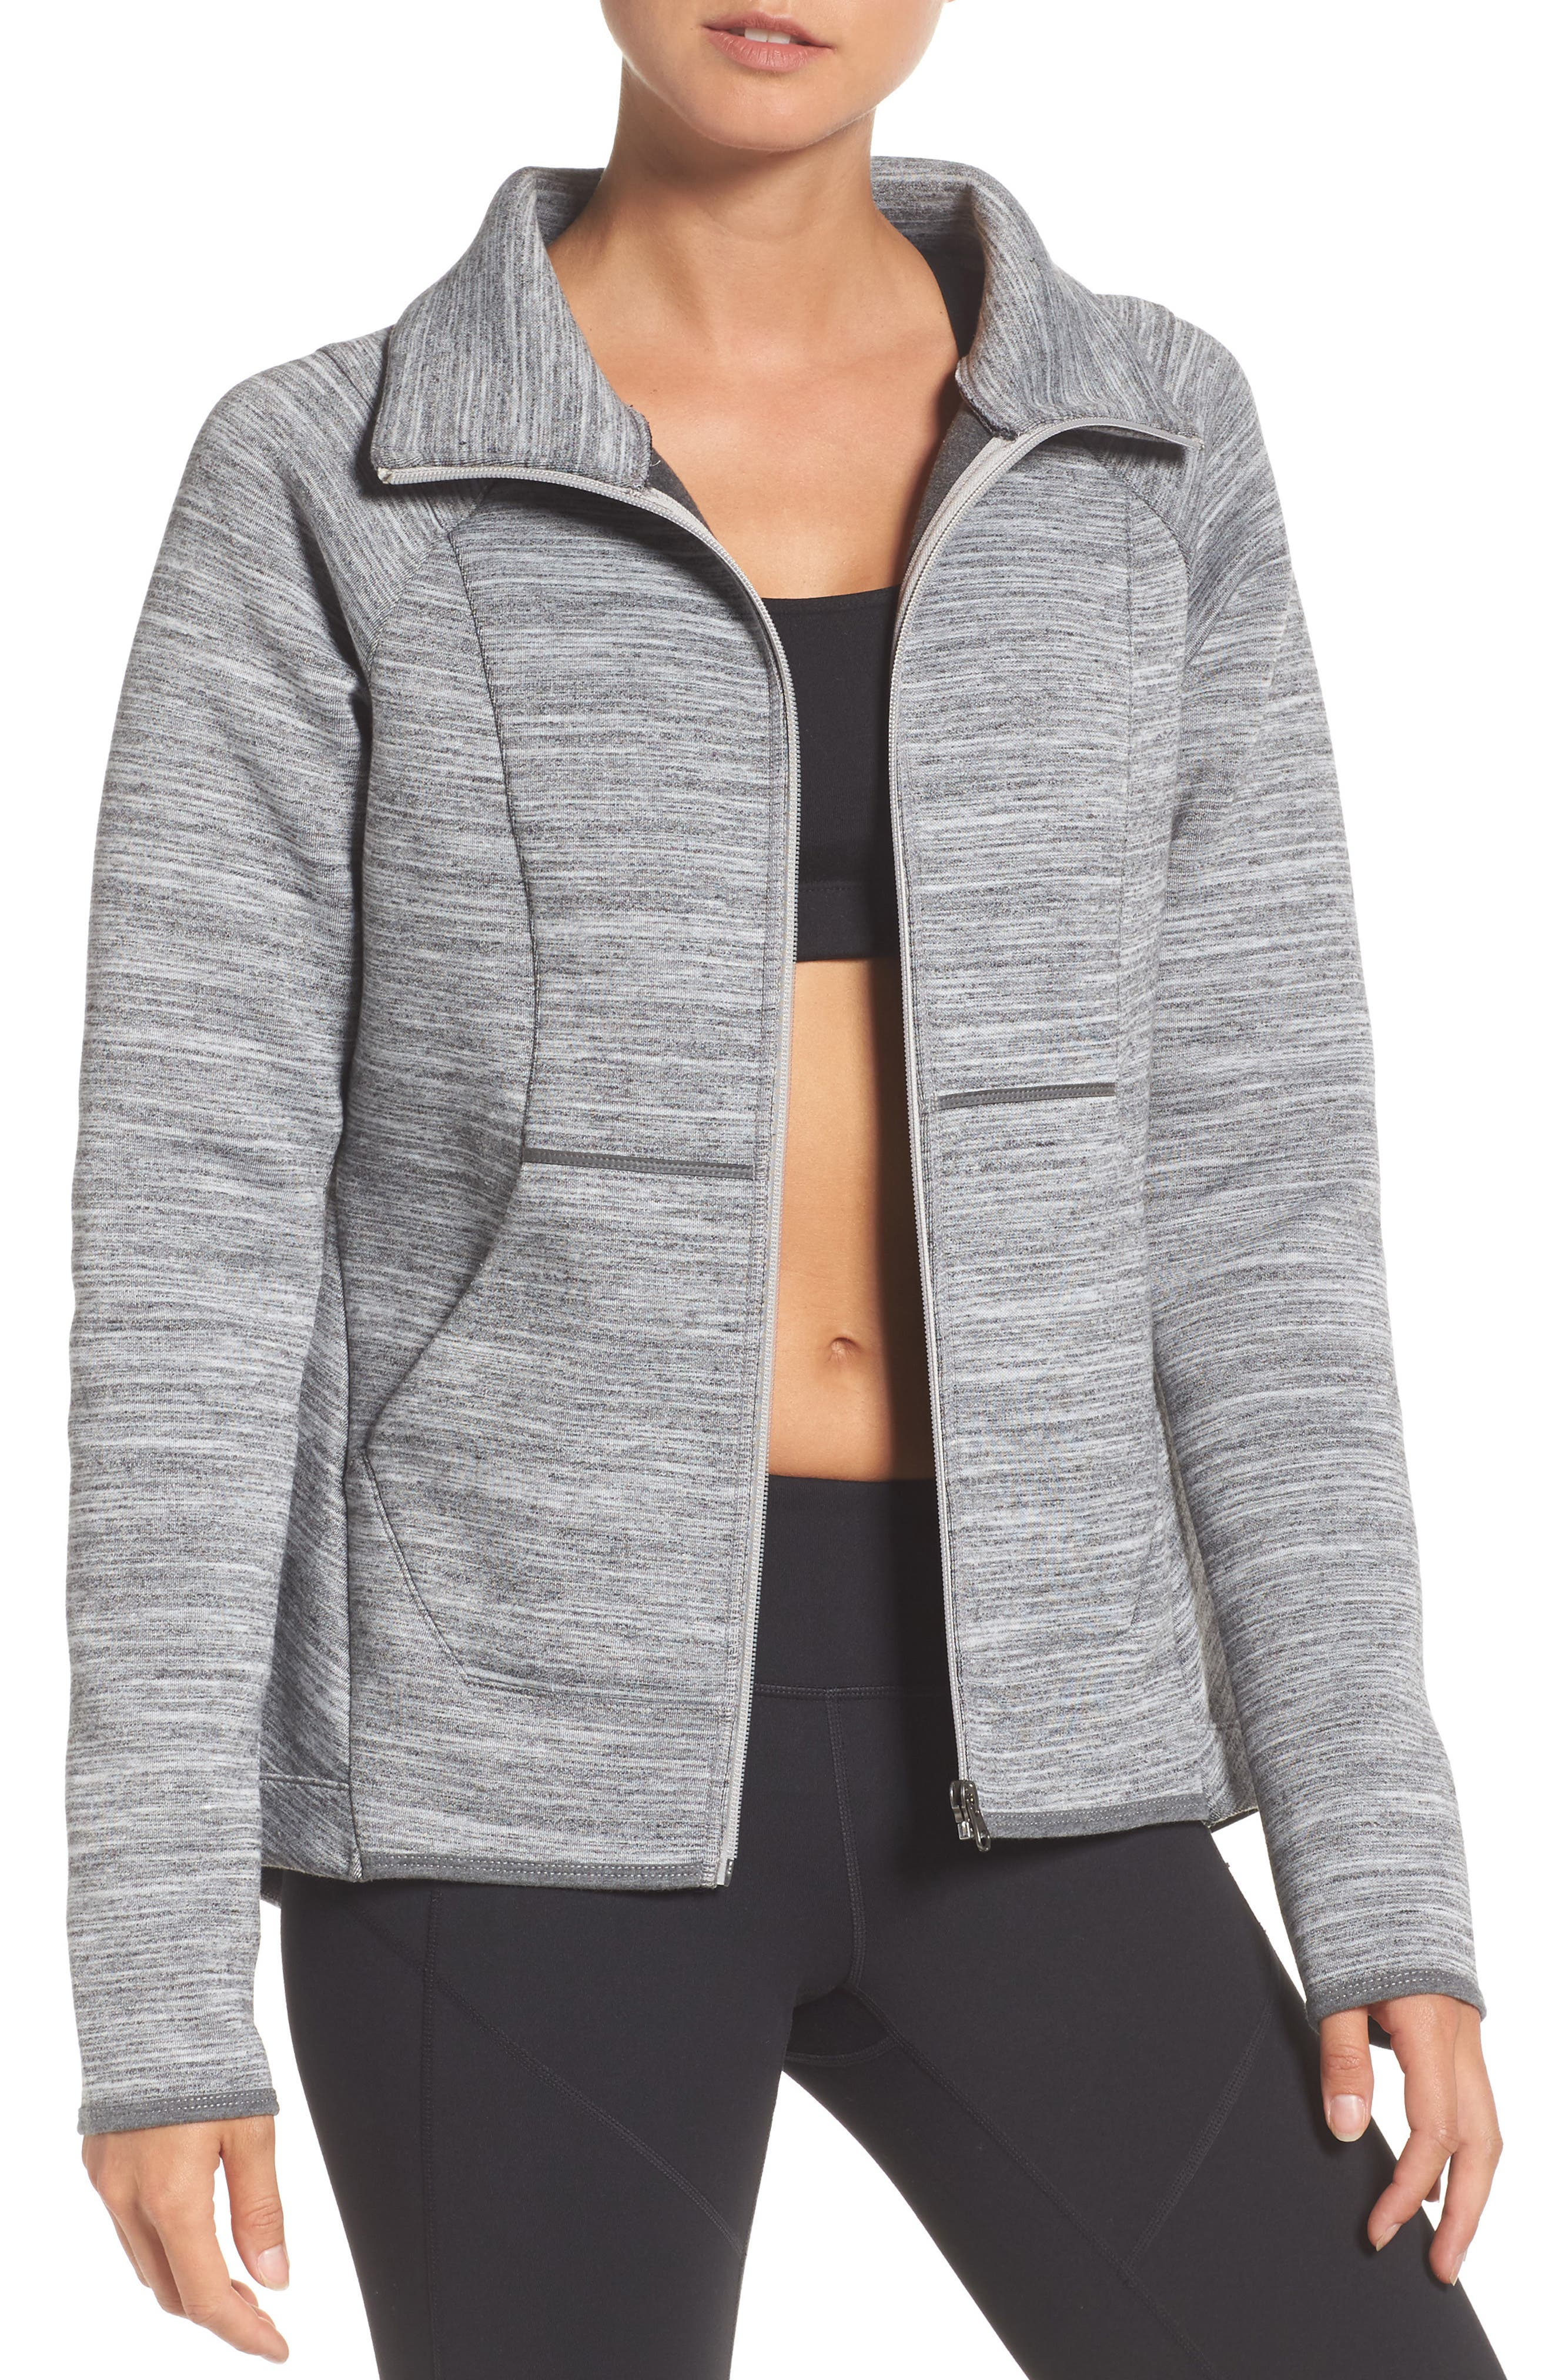 Interval Training Jacket,                         Main,                         color, 030